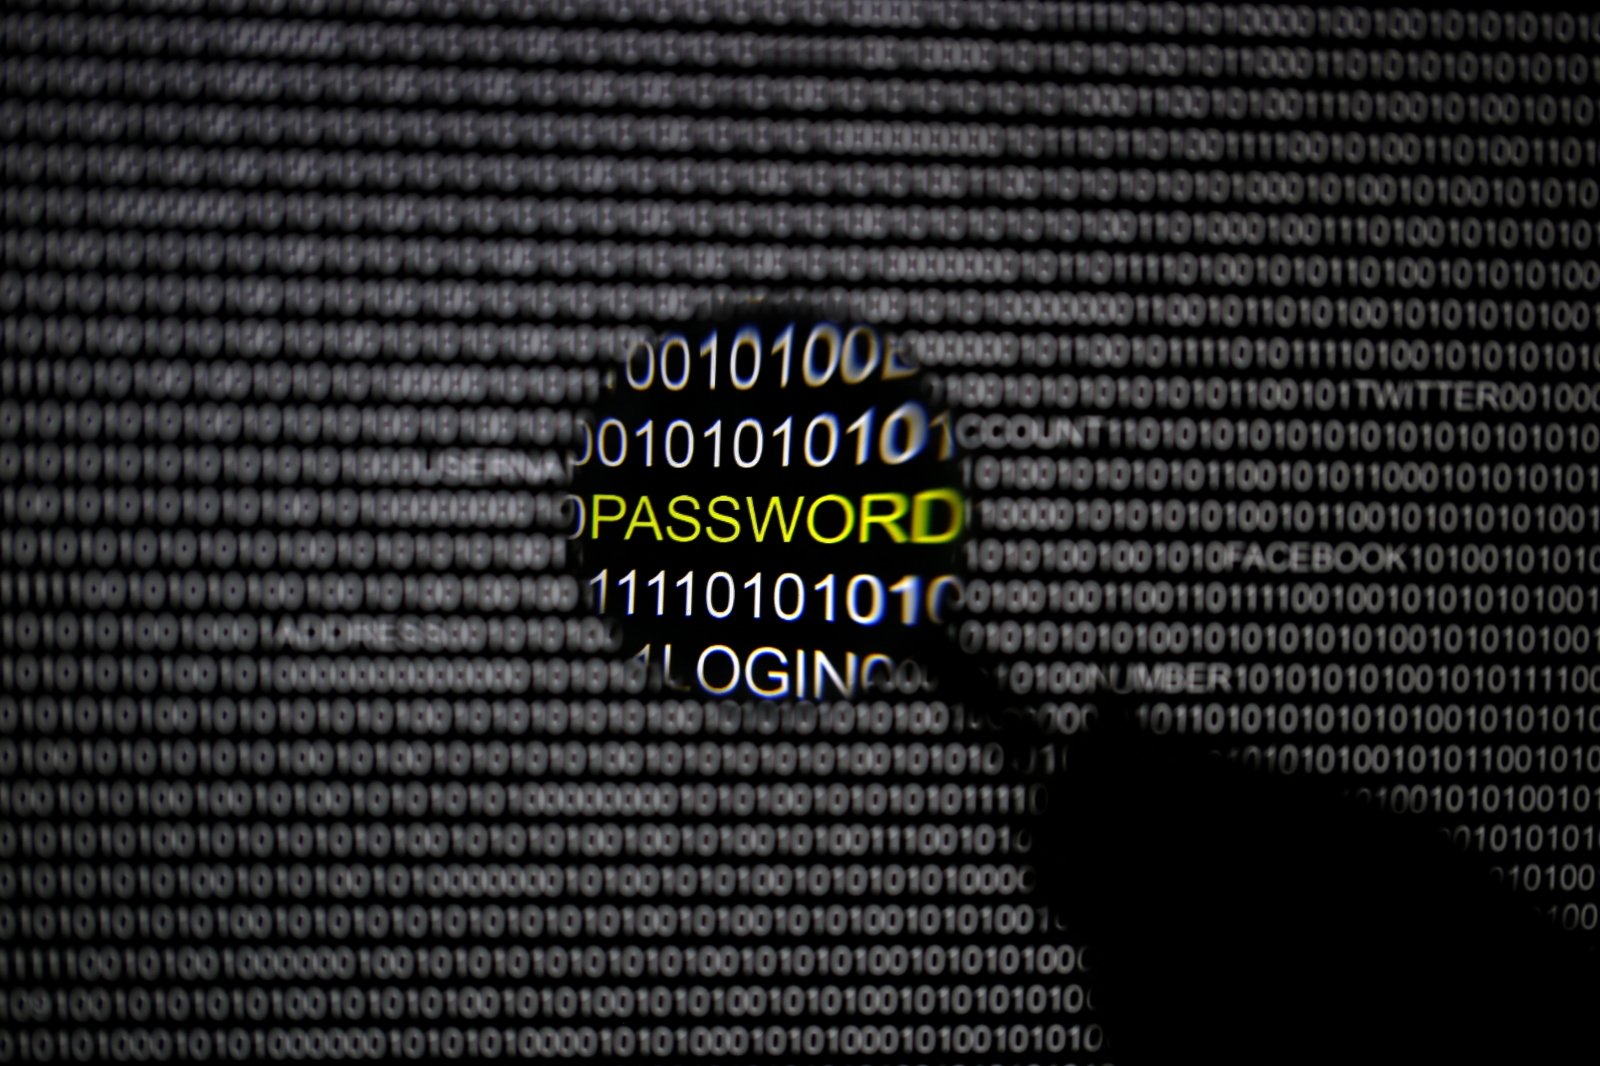 VoIPtalk discretely admits possible data breach to customers initiating precautionary password resets